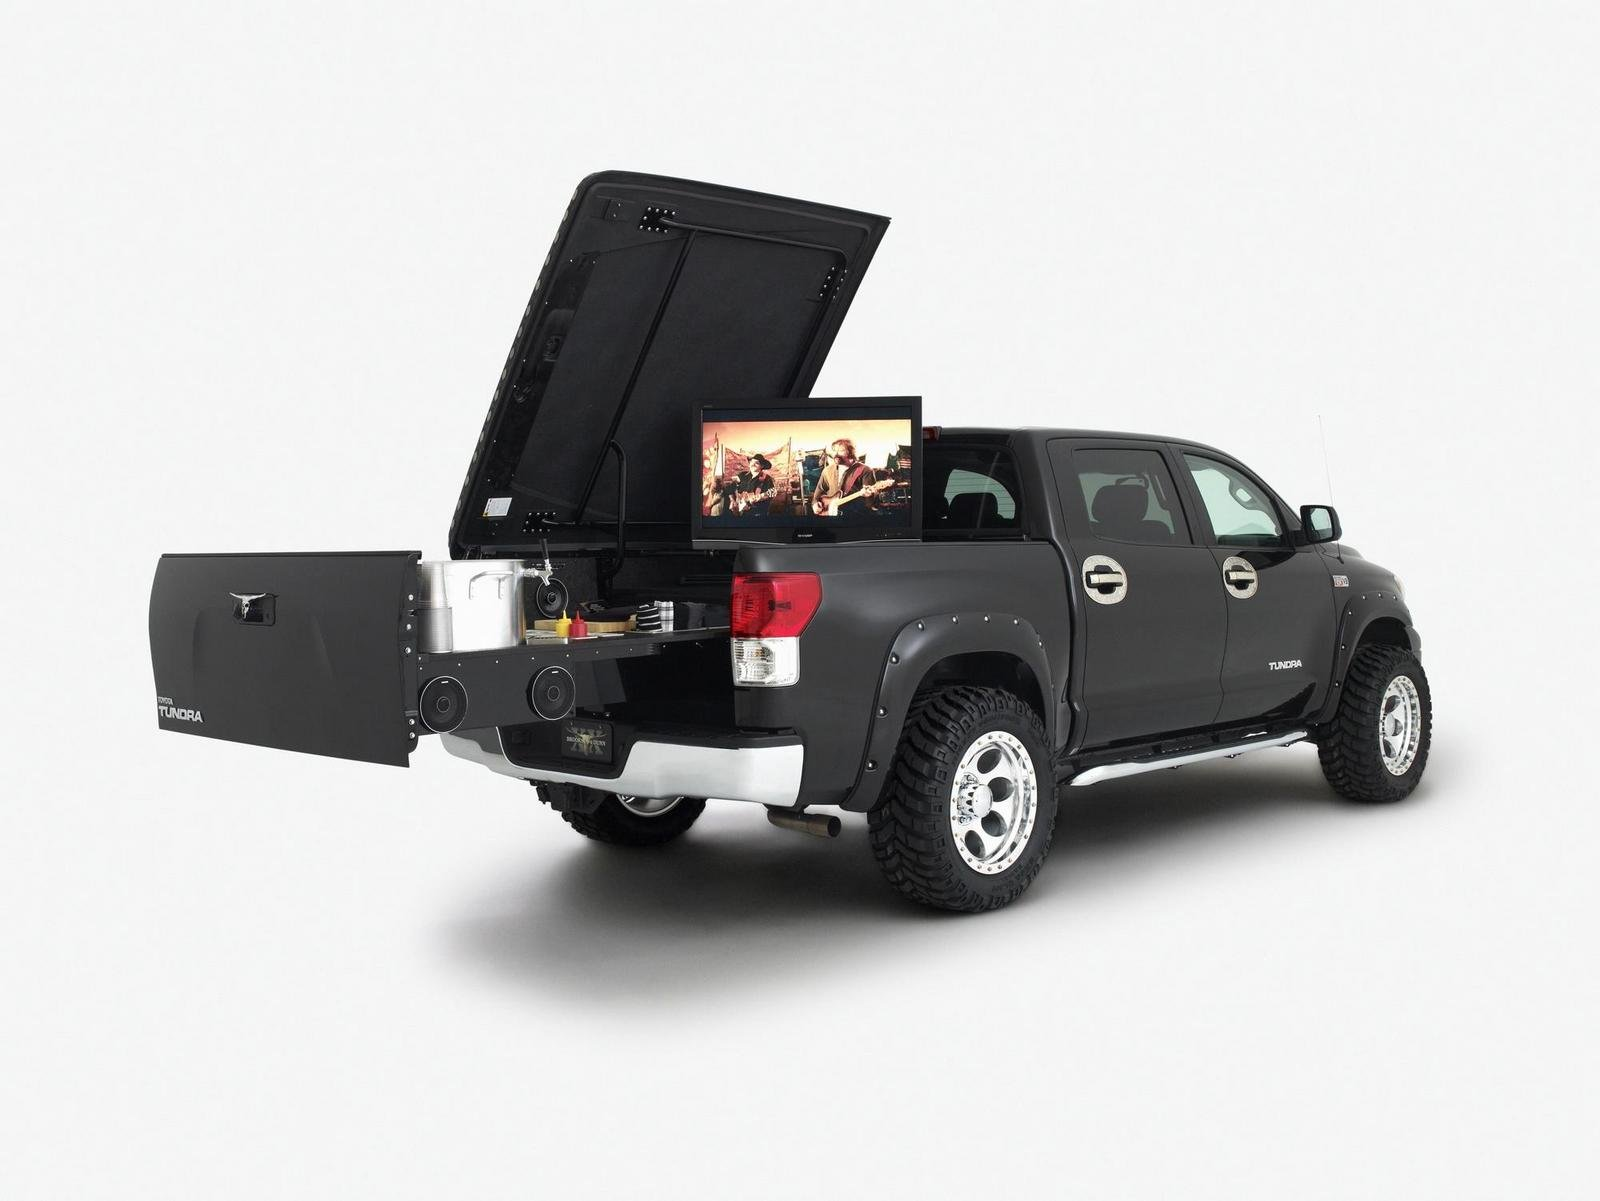 2009 Toyota Tundra Midnight Rider Tailgater By Brooks